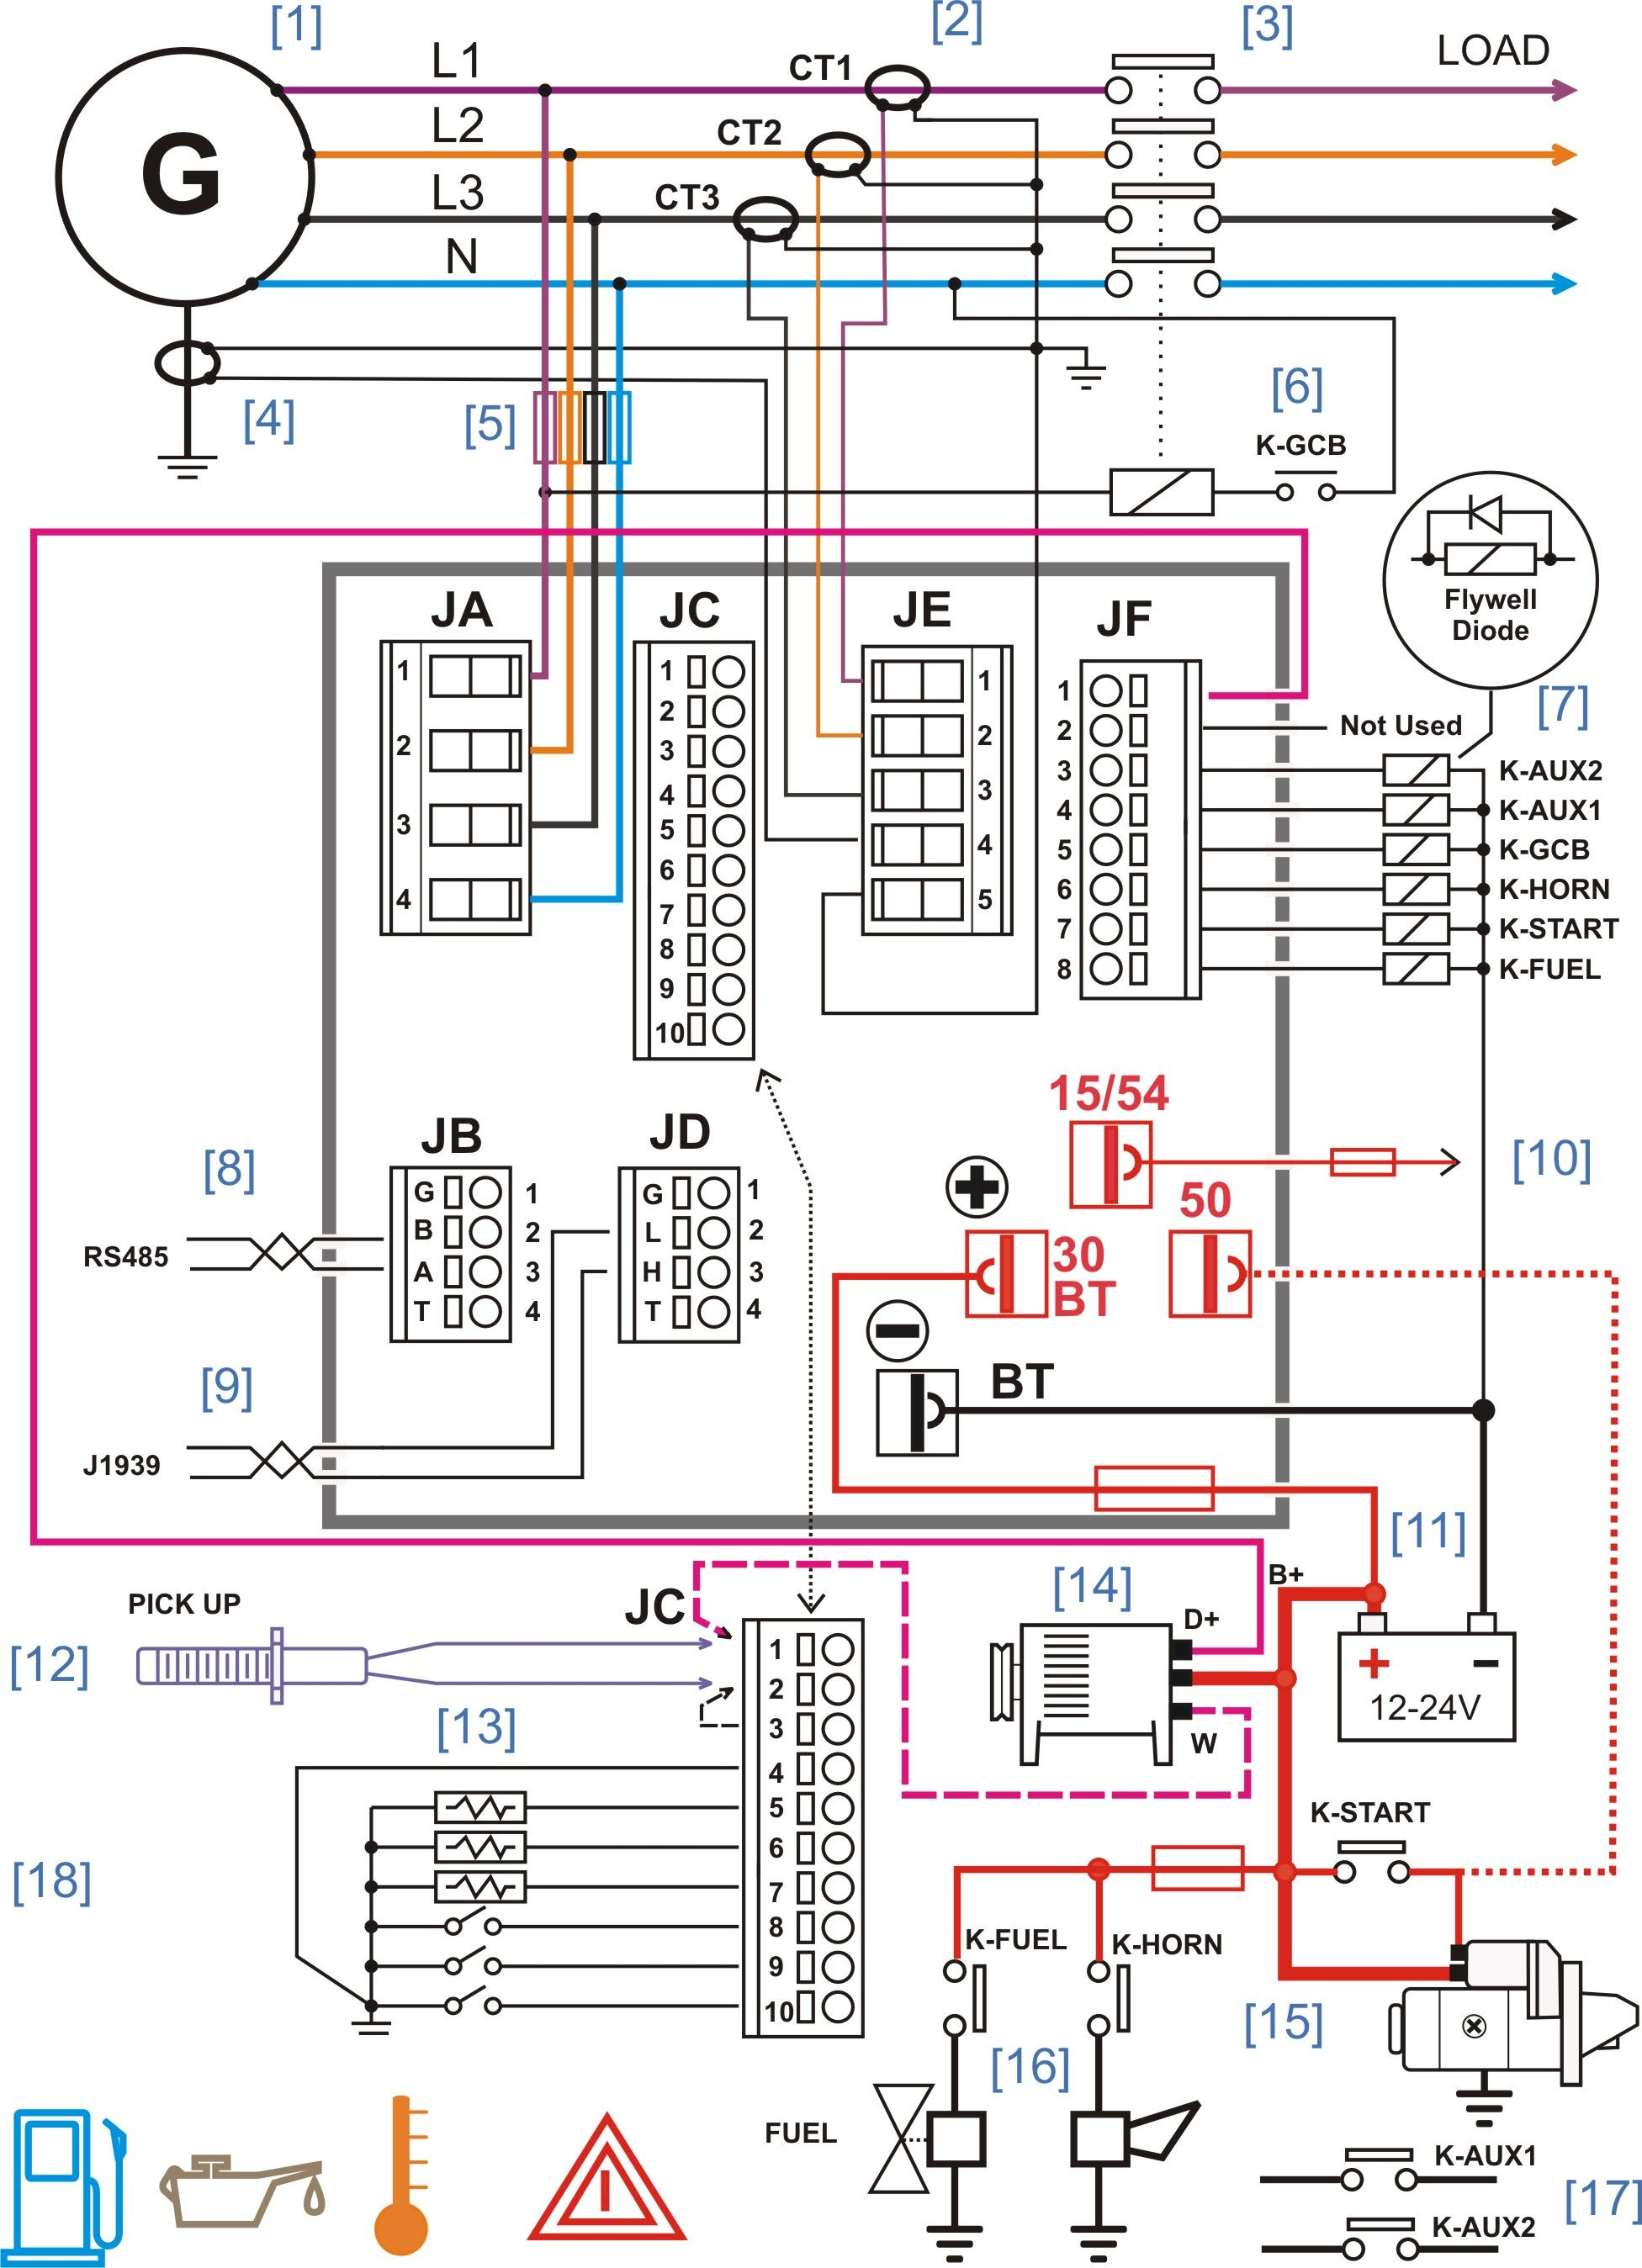 Ac Panel Wiring - Wiring Diagram Progresif on fire pump diagram, motor generator diagram, single phase connection diagram, electric generator diagram, generator connection diagram, single phase generator animation, generator avr circuit diagram, single phase electric motor diagram, single phase motor connections, 3 phase ac generator diagram, 240v single phase diagram, generator exciter diagram, induction magnecitor powered generator diagram, single phase motor wiring diagrams,